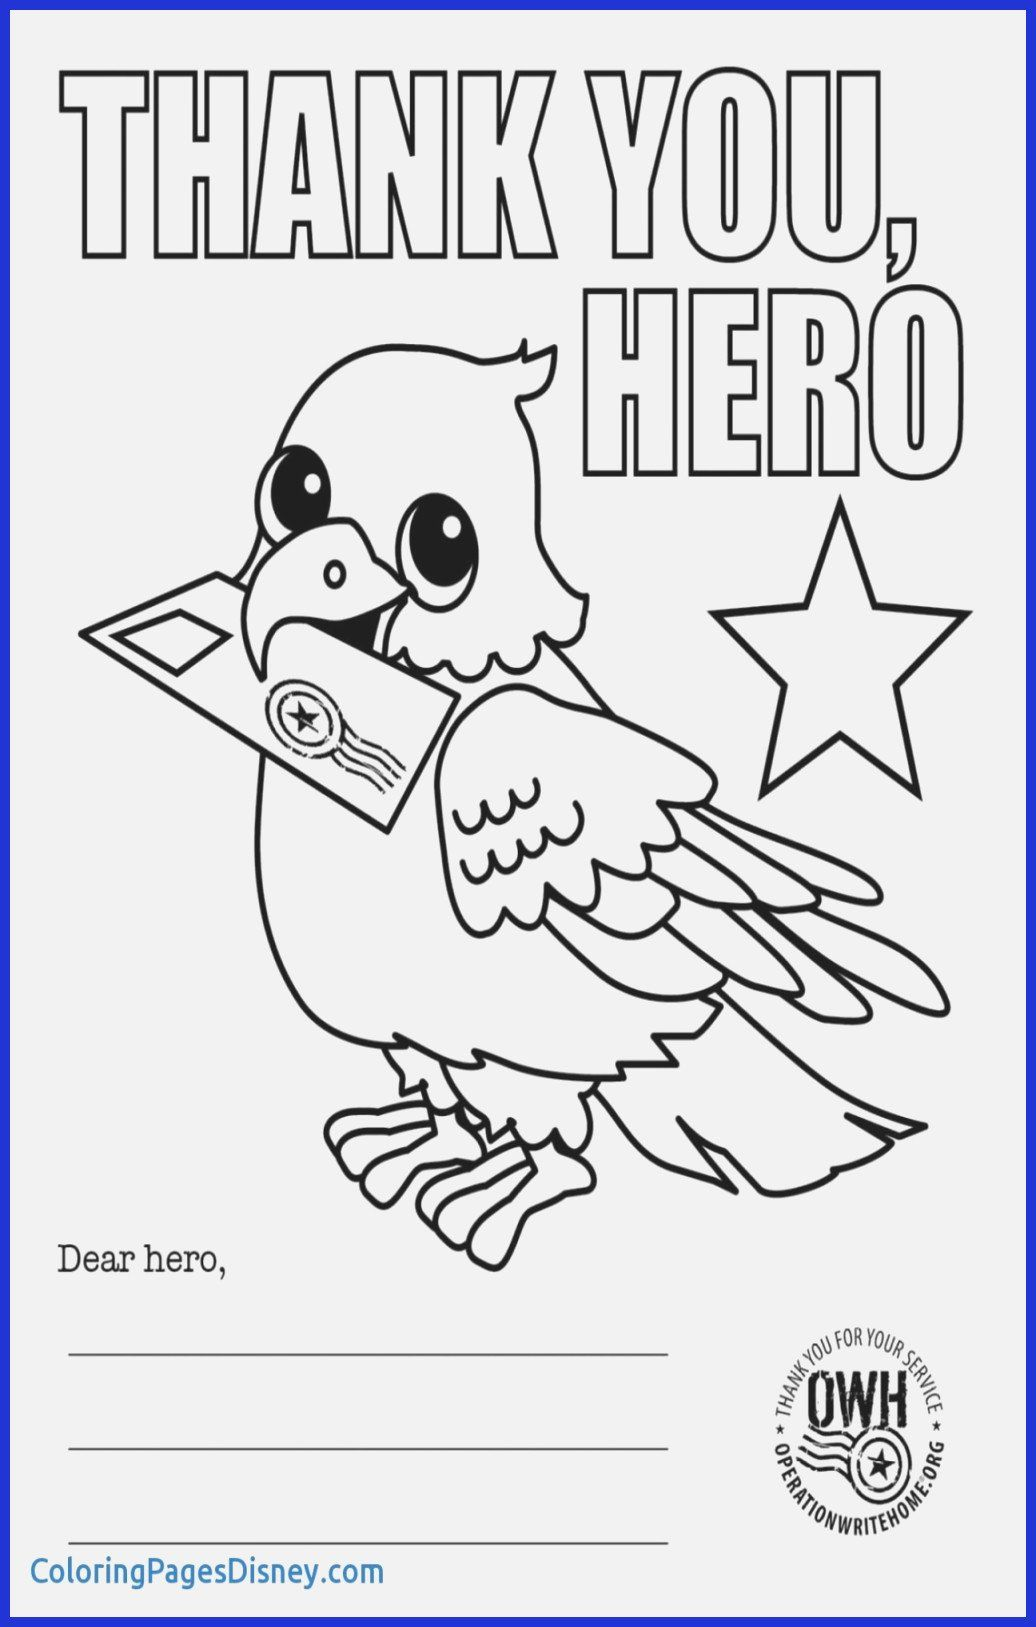 Thank You Coloring Pages Unique Coloring Pages For July 4th New Pokemon Colorin Disney Princess Coloring Pages Bird Coloring Pages Coloring Pages Inspirational